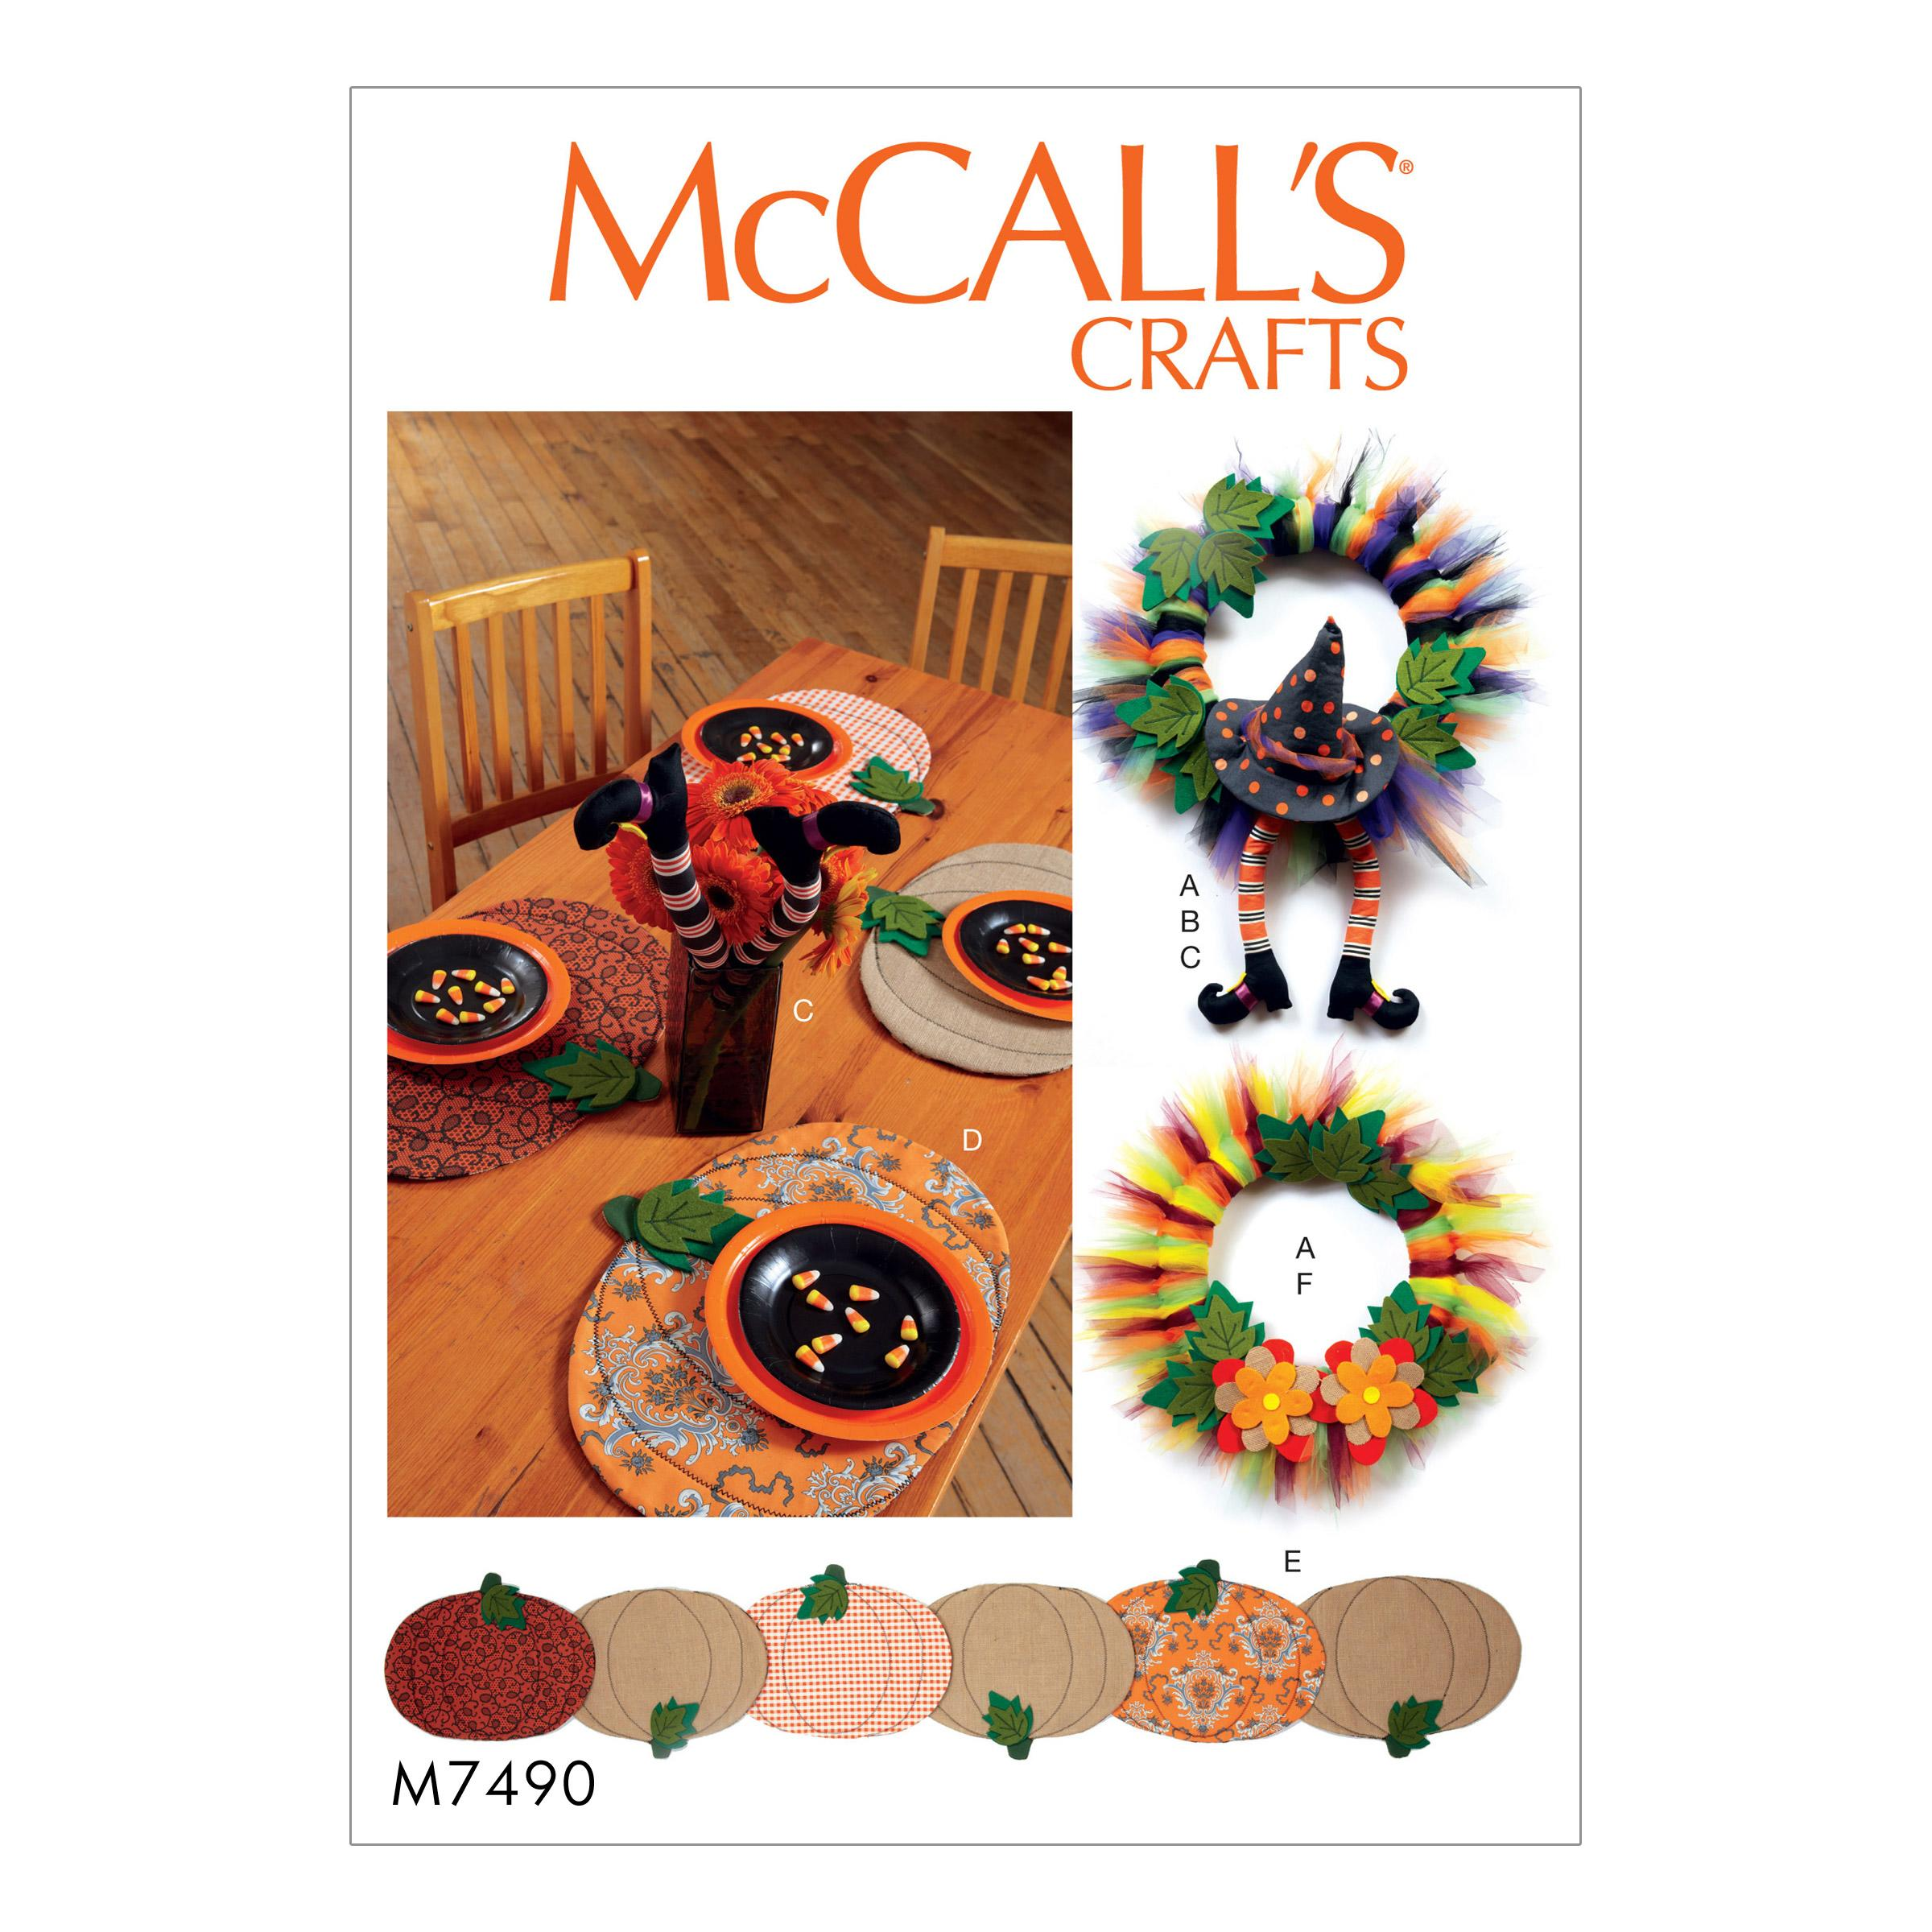 McCalls M7490 Crafts Home & Holiday